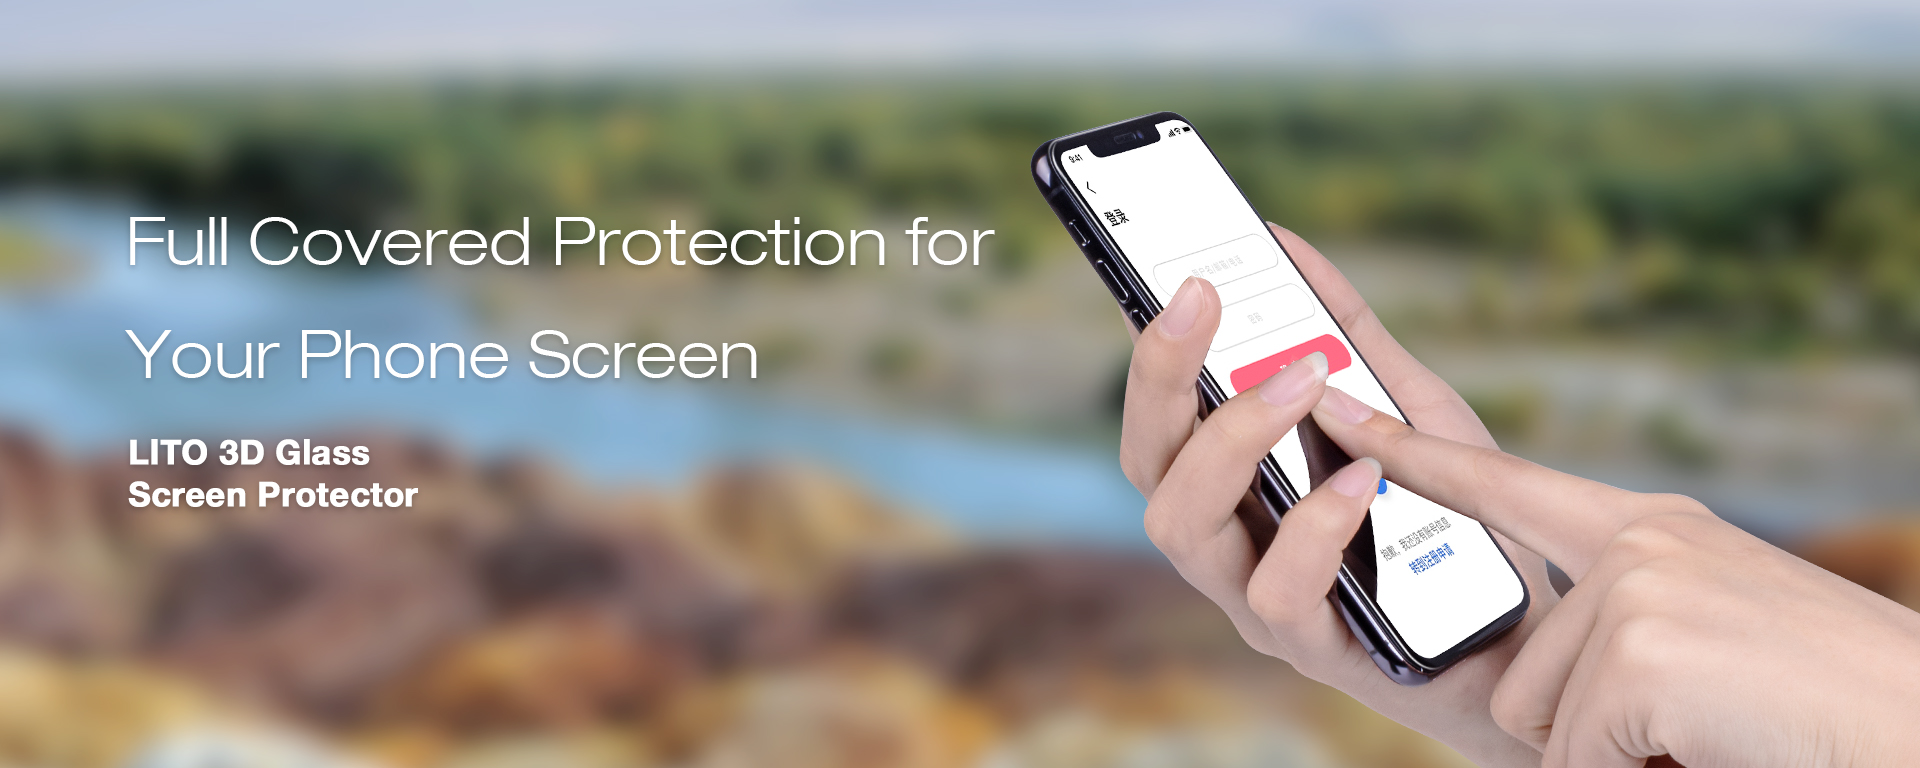 Lito Screen Protector Manufacturer 3D Full Cover Tempered Glass Screen Guard